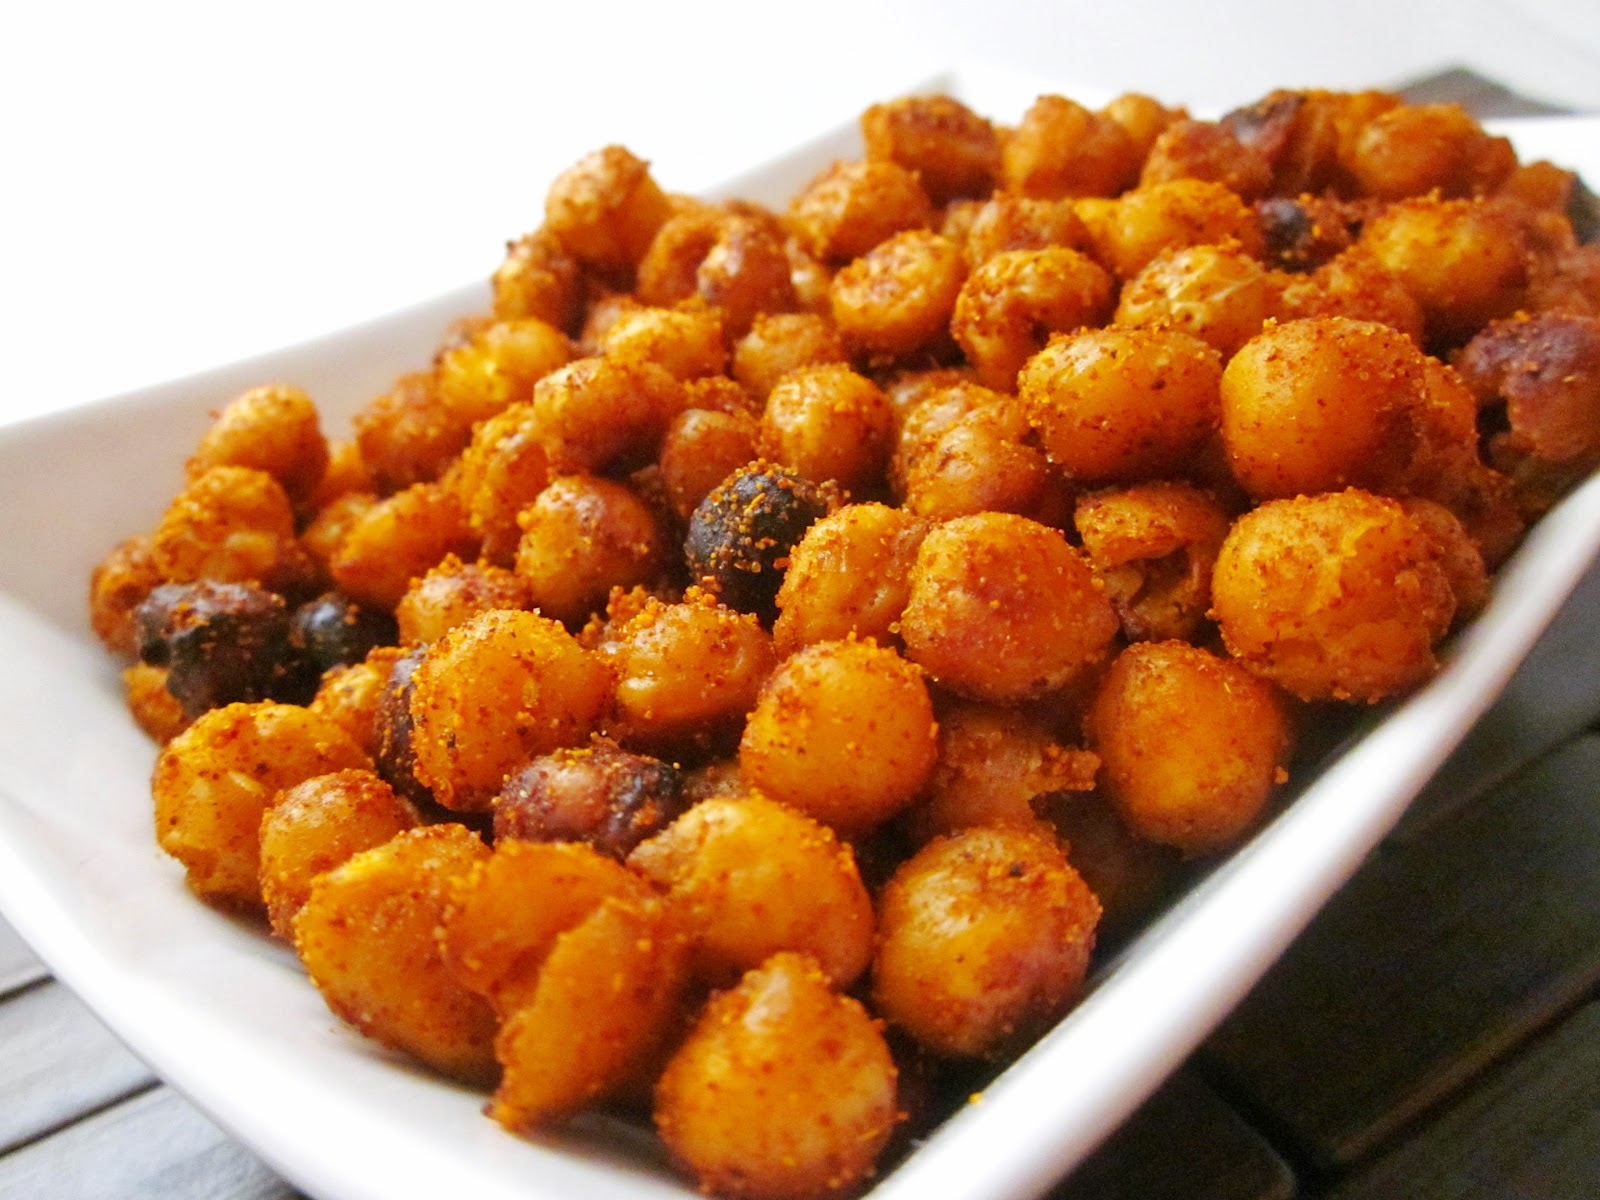 snack goldfish fiesta snack mix roasted chickpea snack recipe yummly ...